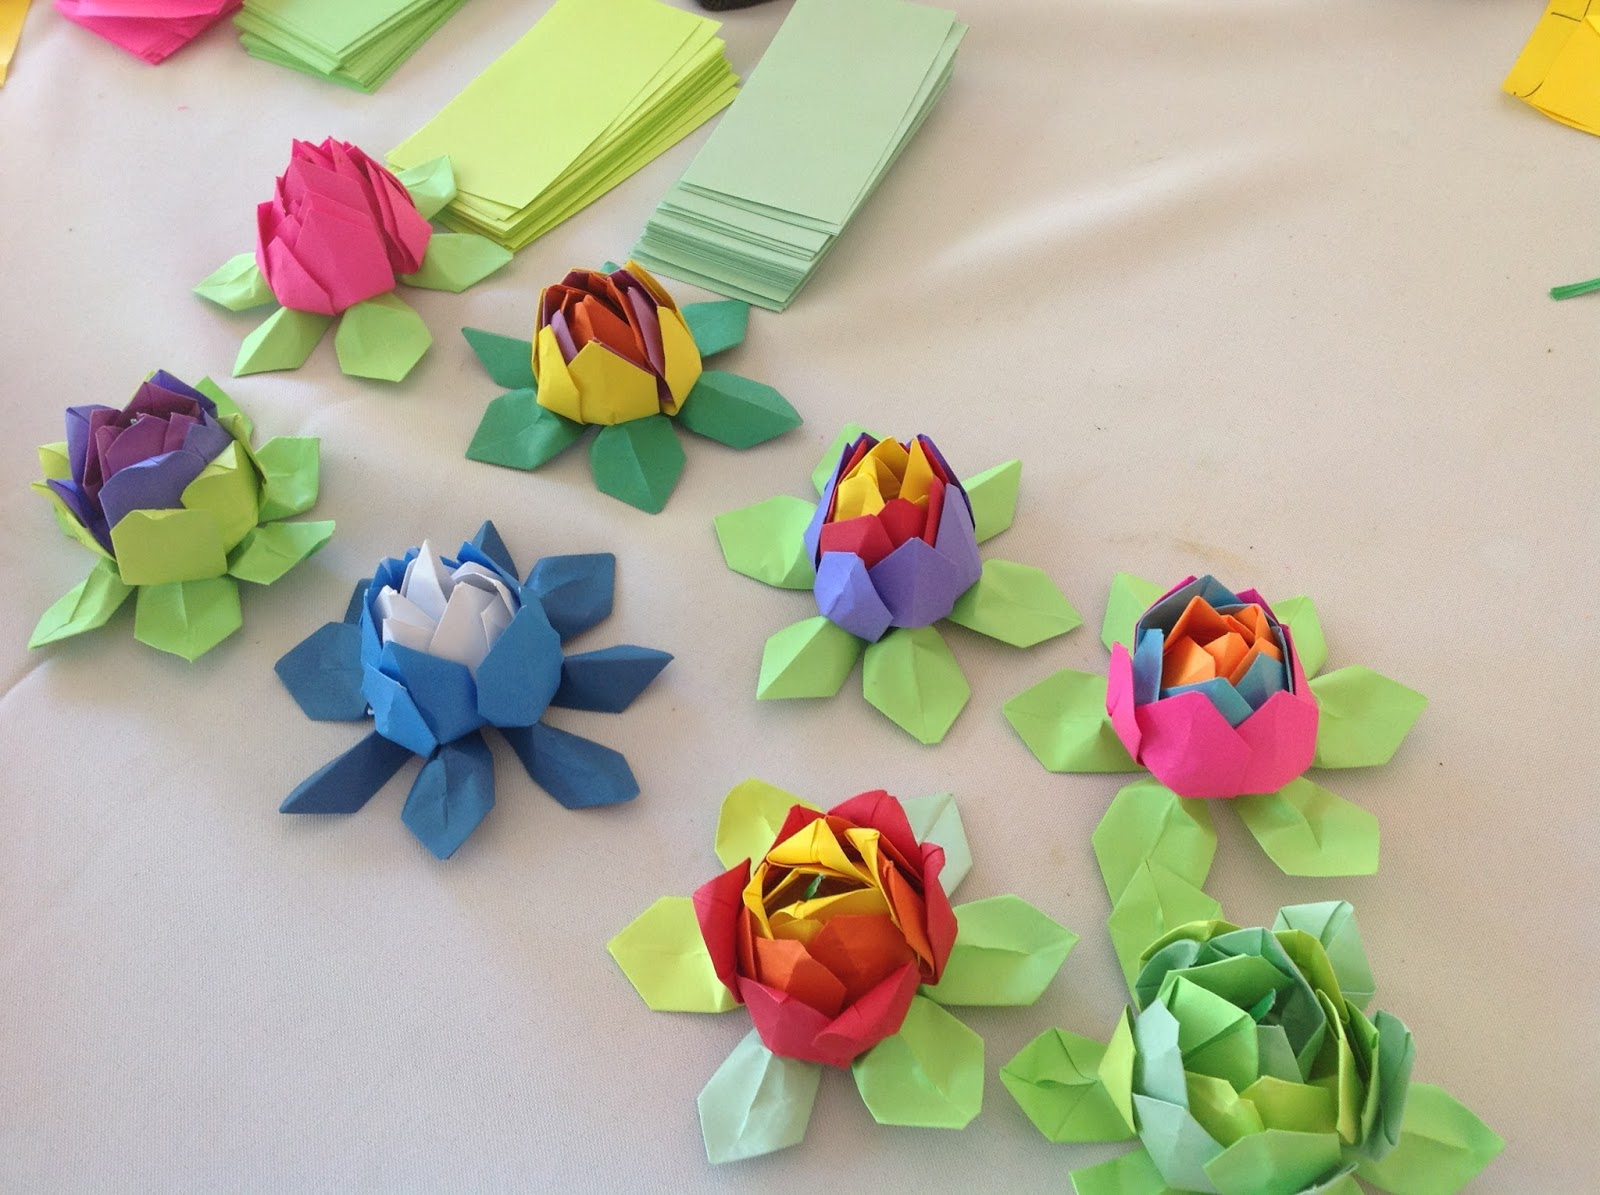 Khandroling Paper Cooperative Mindfulness Origami Program At